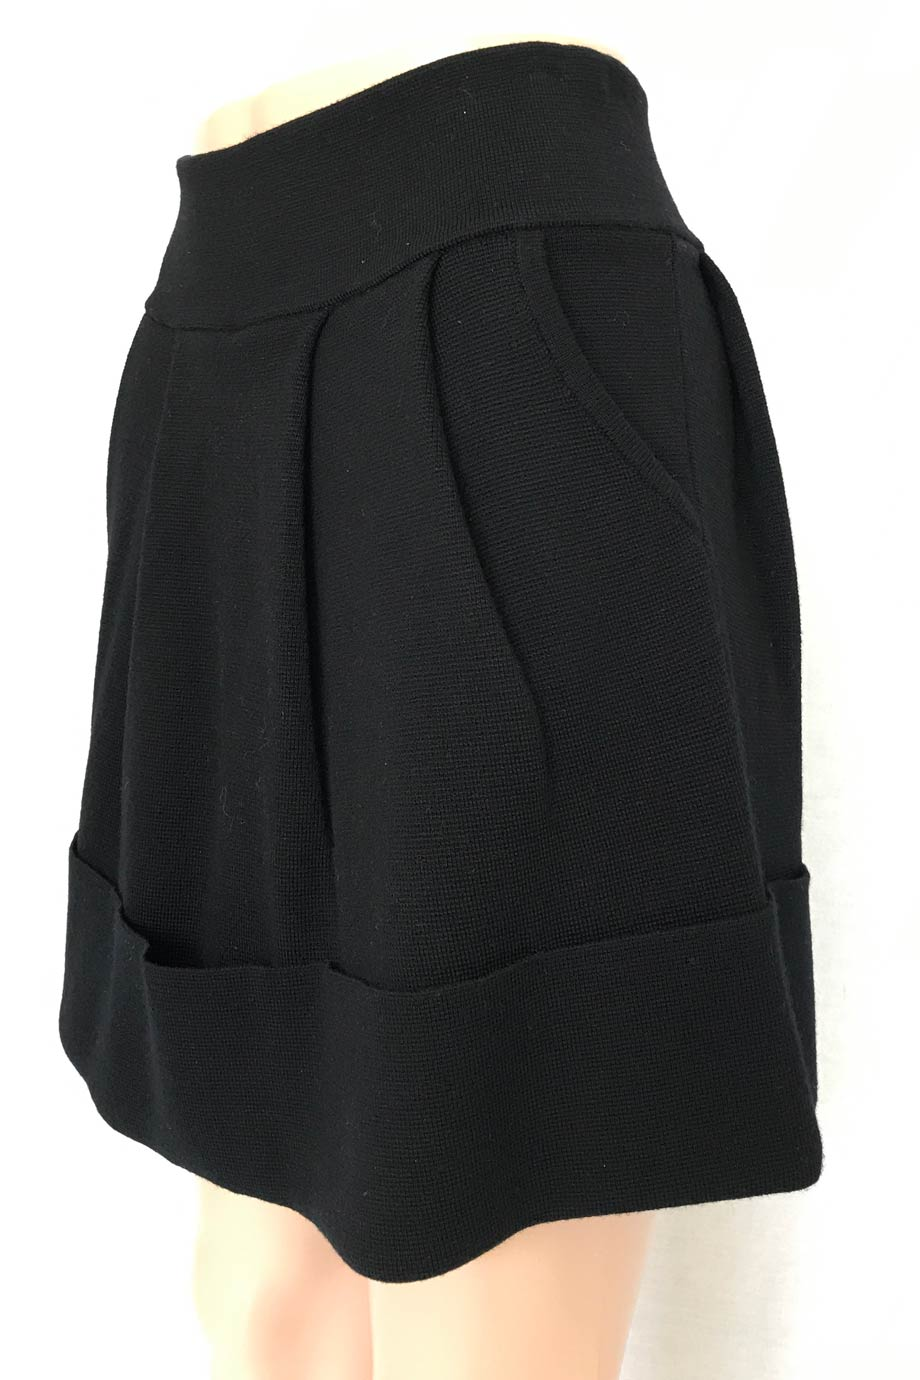 Sonia By Sonia Rykiel Black Wool Knit Cuffed A-Line Skirt / Sz XS-S-Style Therapy